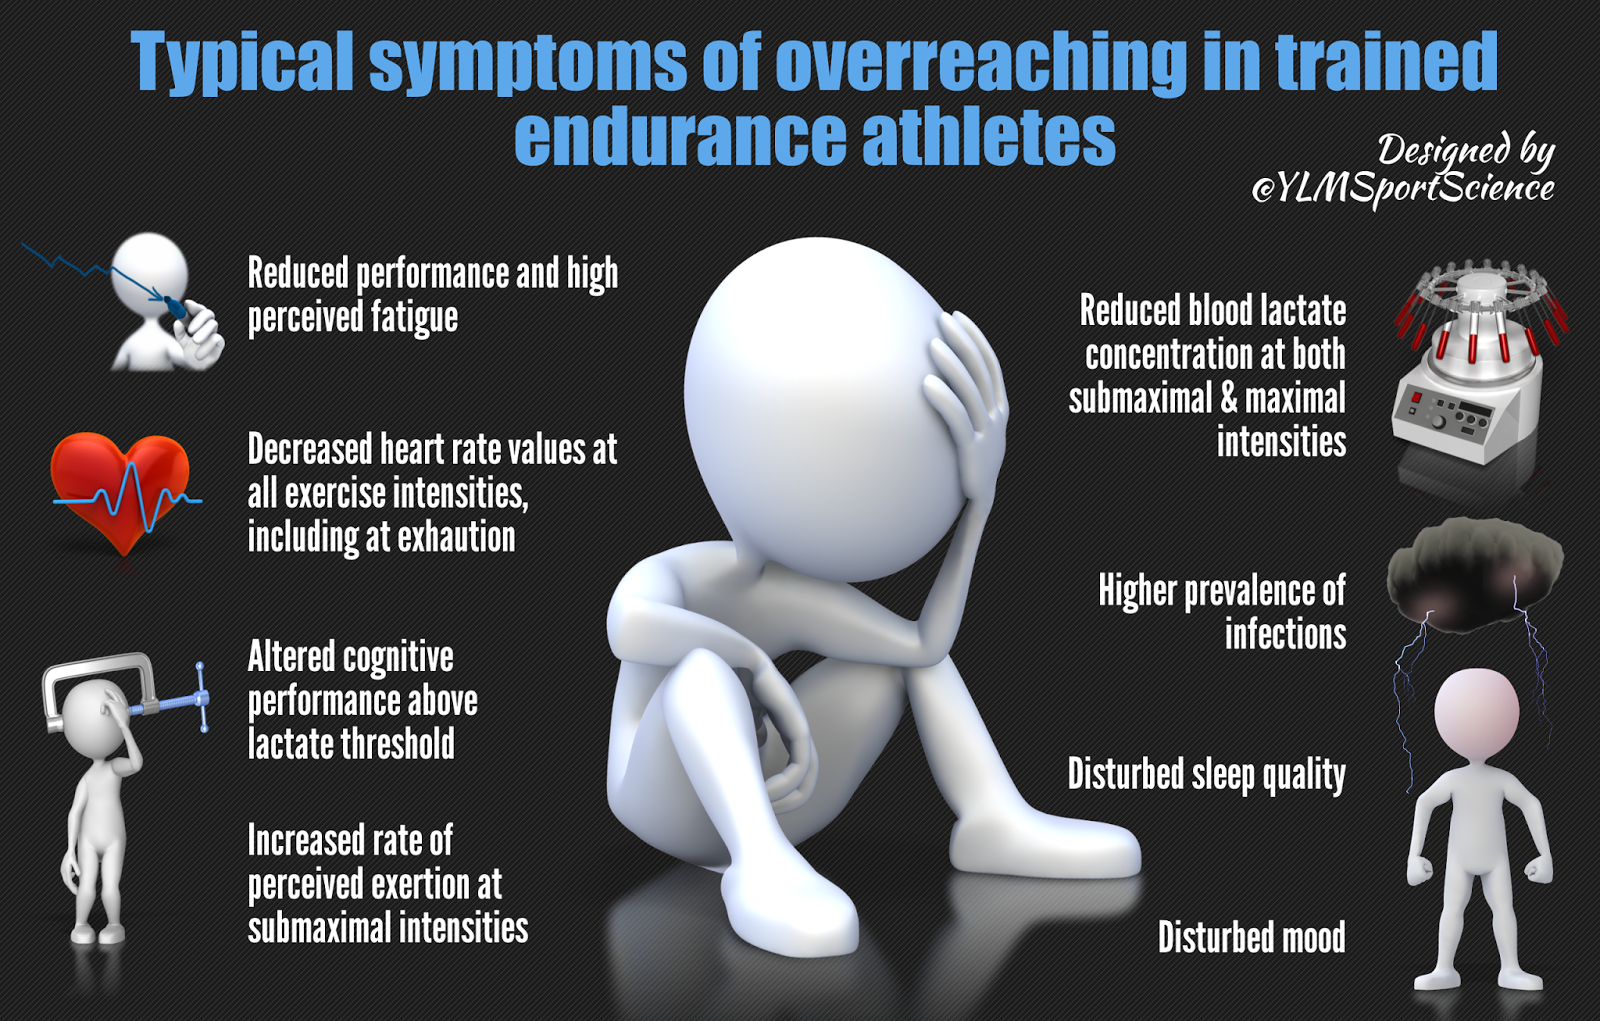 Typical Symptoms Of Overreaching In Endurance Athletes